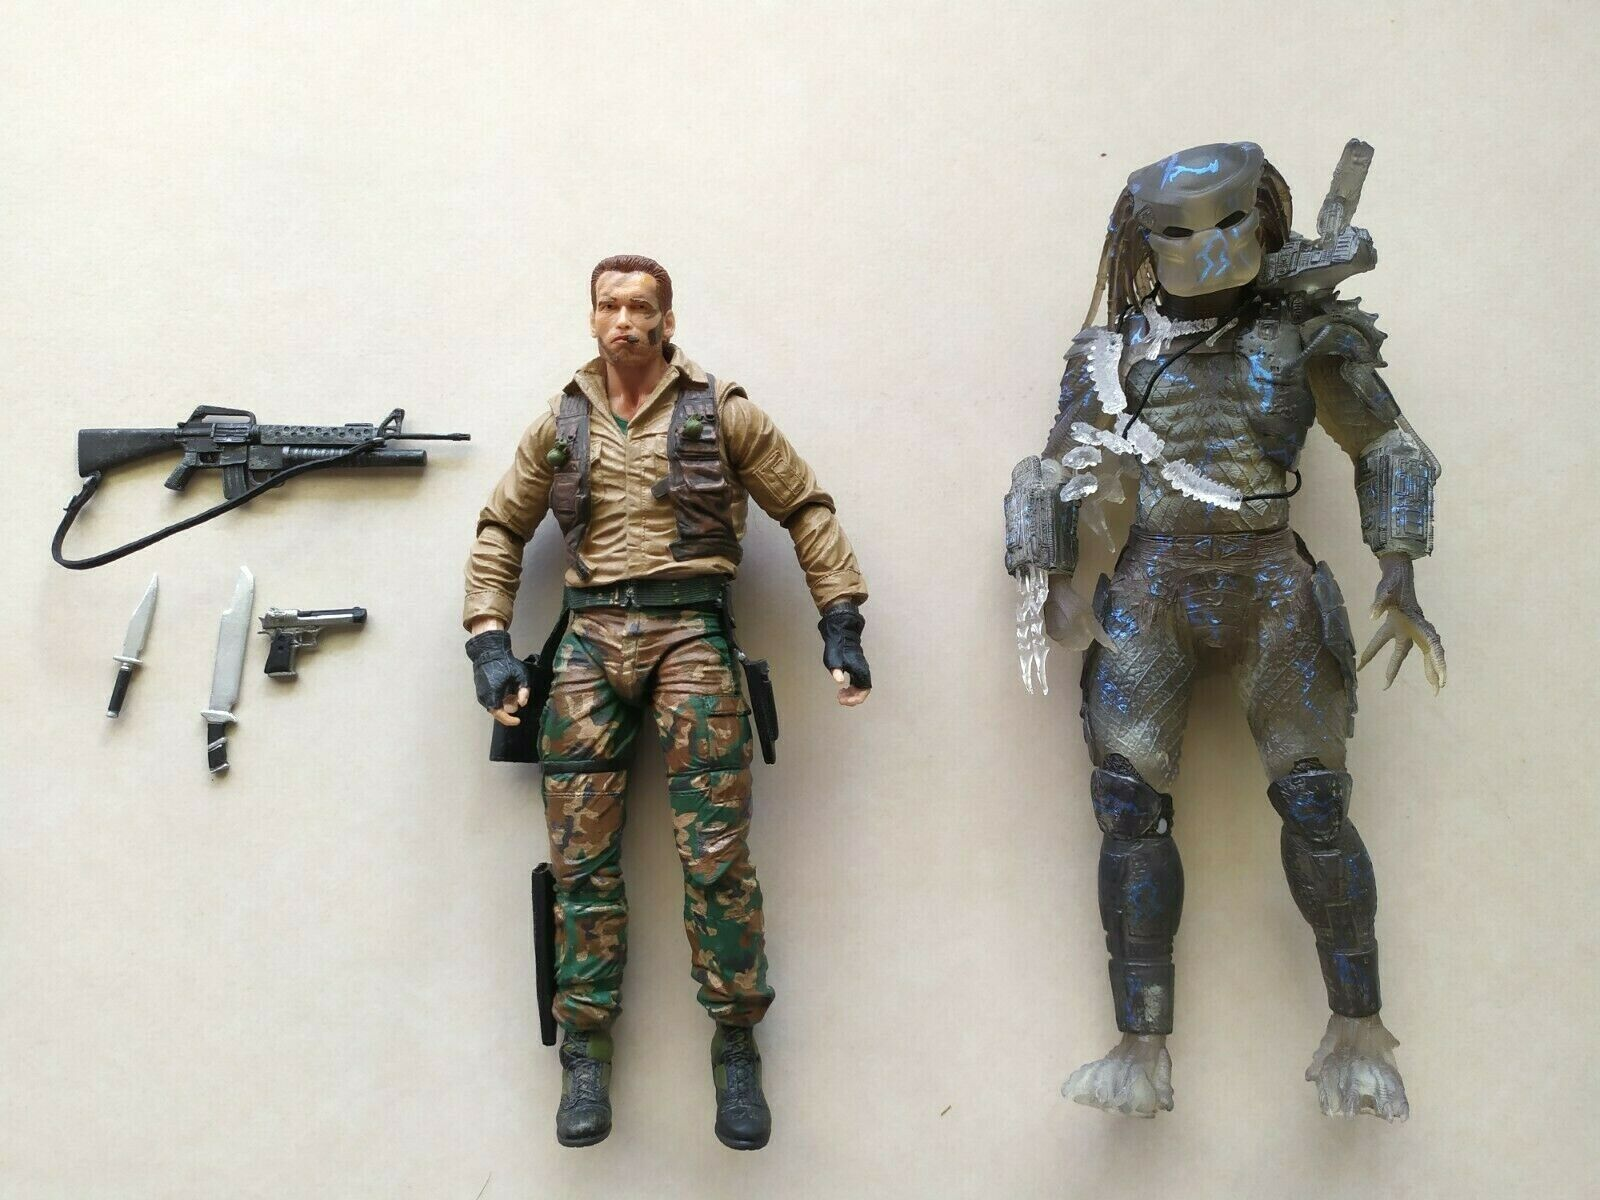 NECA Protator - Jungle Extraction Dutch 2013 & Protator Series 9 25Th Annivers